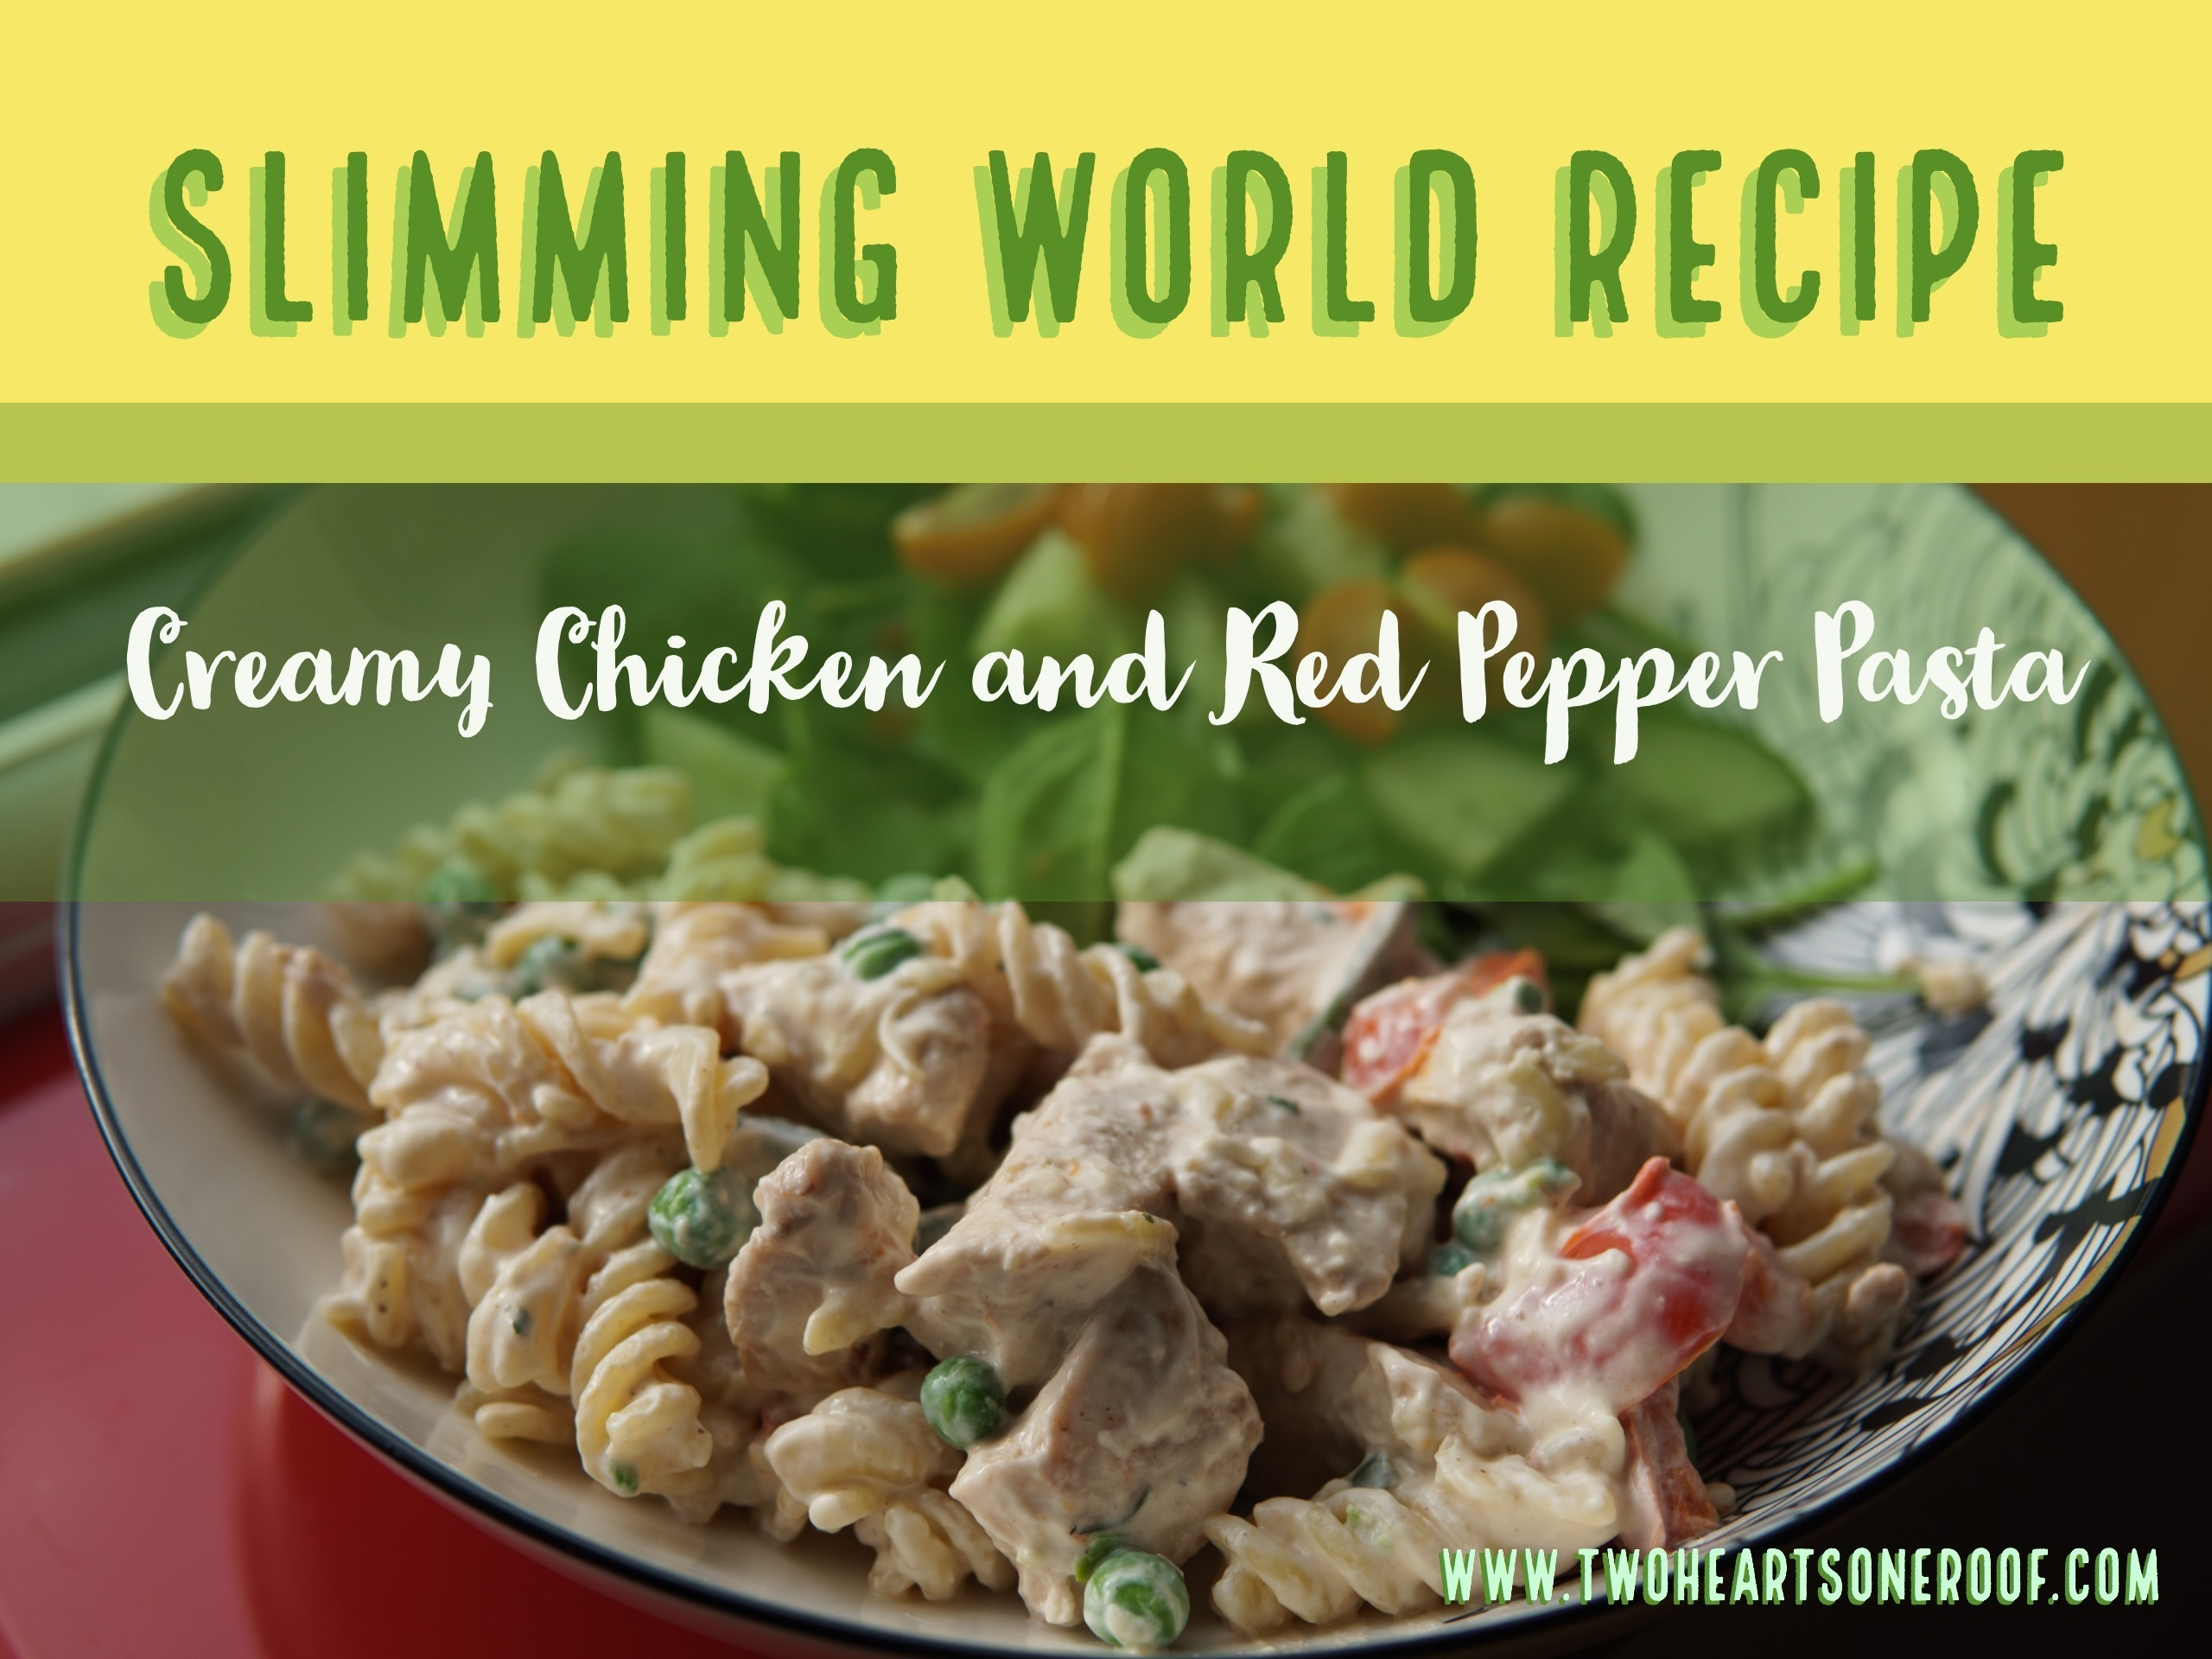 Slimming World Creamy Chicken and Red Pepper Pasta Recipe